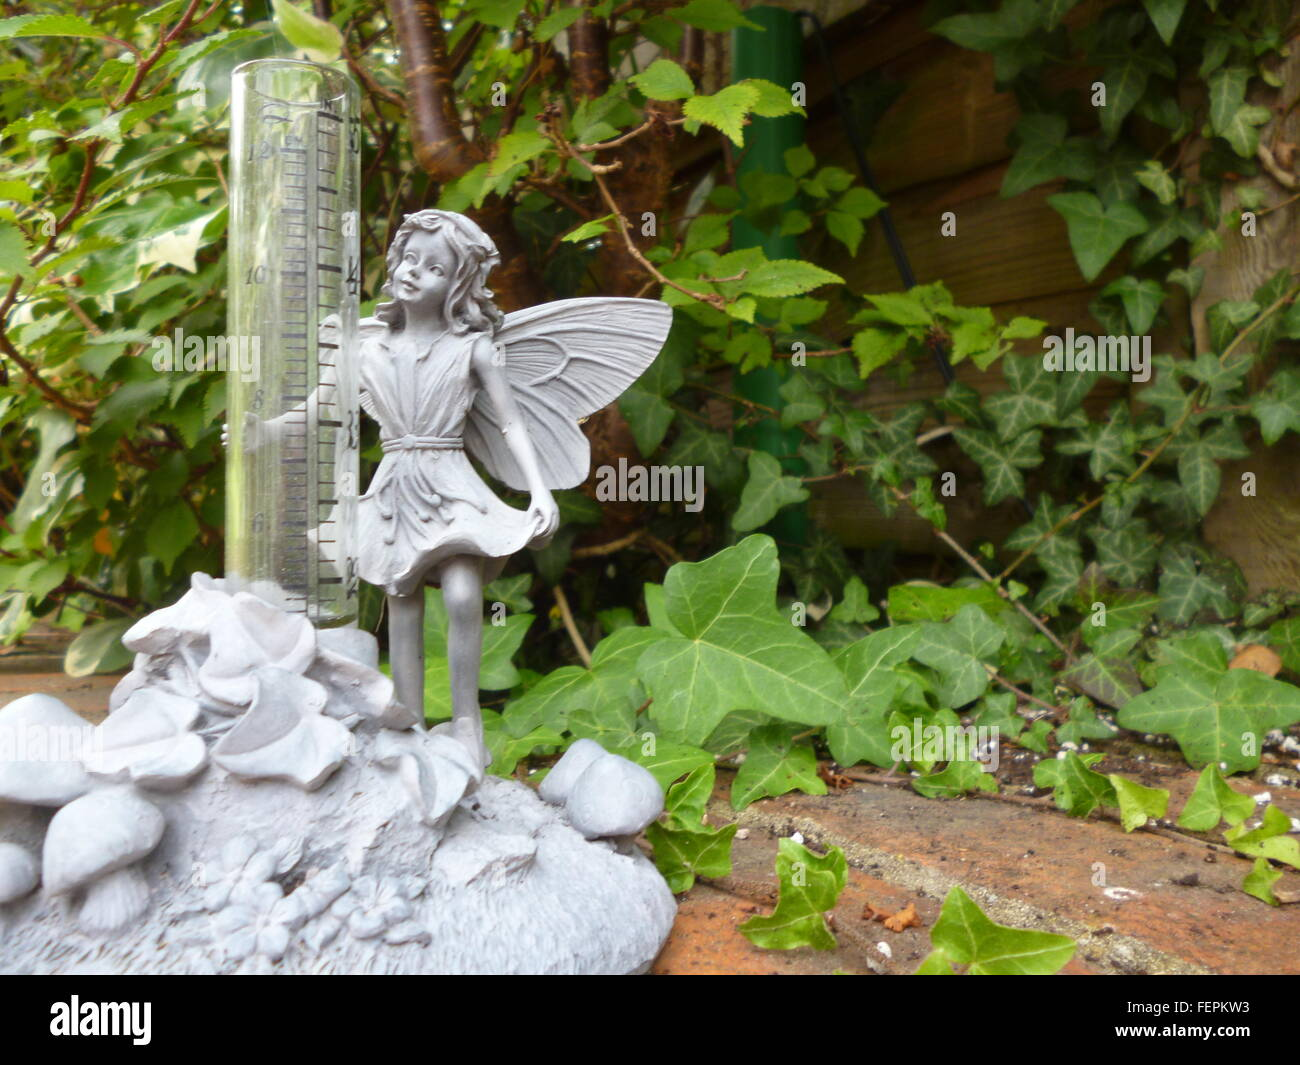 Garden Thermometer With Angel Statue Against Plants   Stock Image